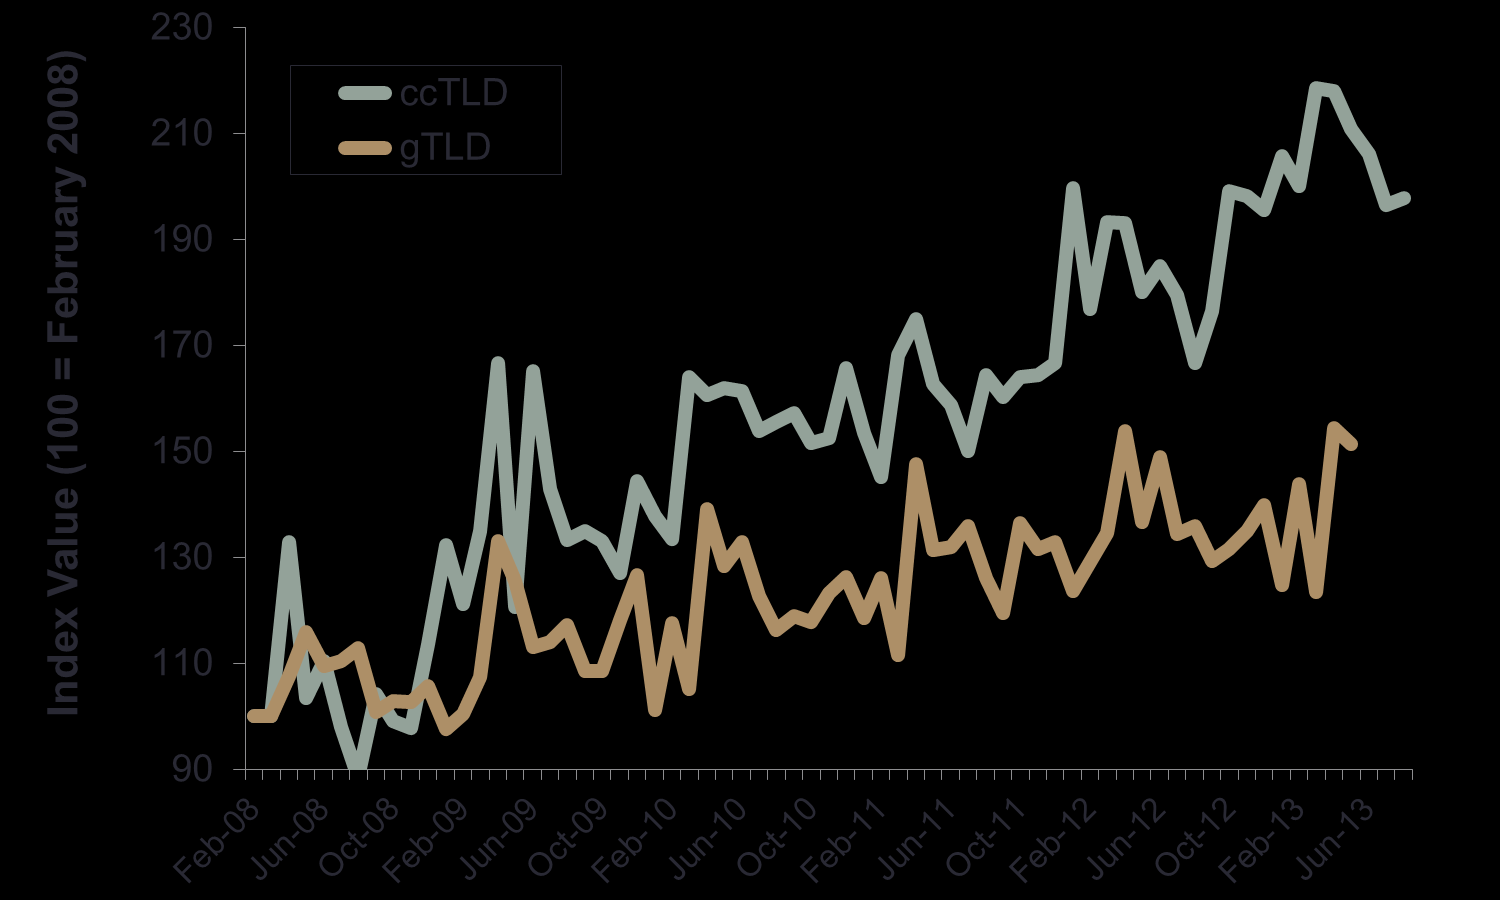 Withdrawn Demand for Domains Deletes Withdrawn demand for domains (deletes) is the counterpart to new demand outlined in the previous section and exhibits a significantly different pattern.